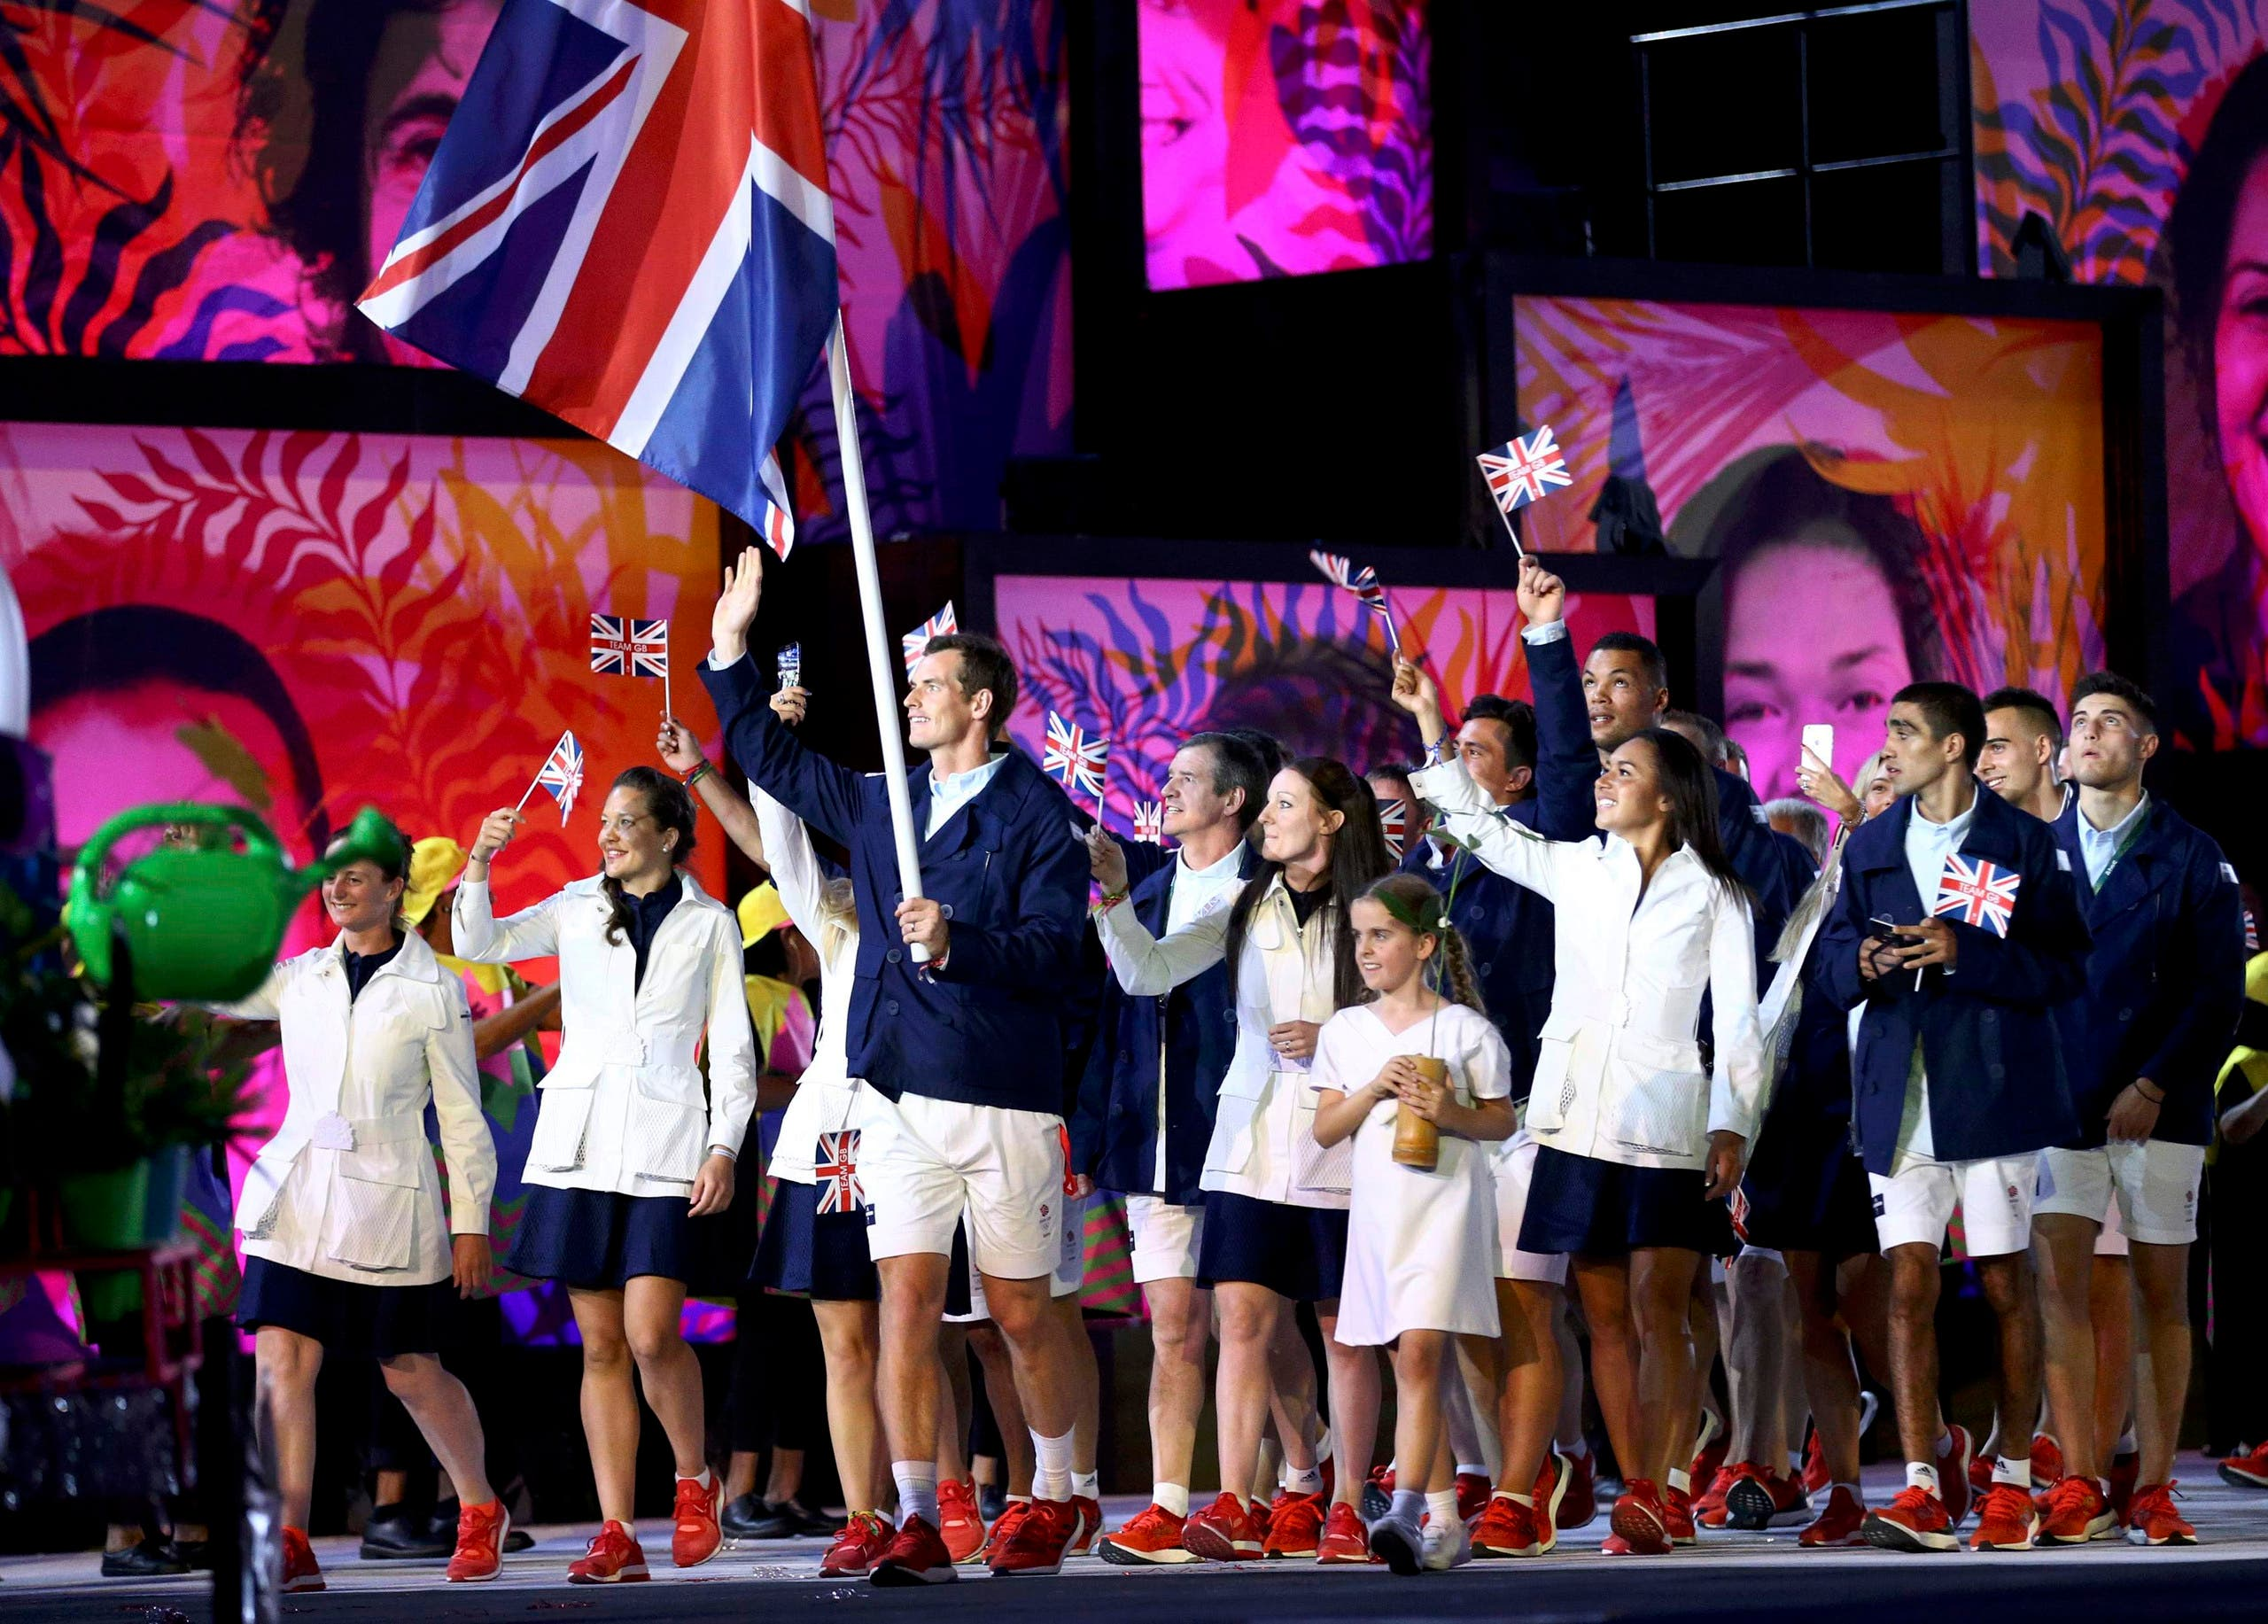 Flag-bearer Andy Murray (GBR) of Great Britain leads his contingent during the opening ceremony. REUTERS